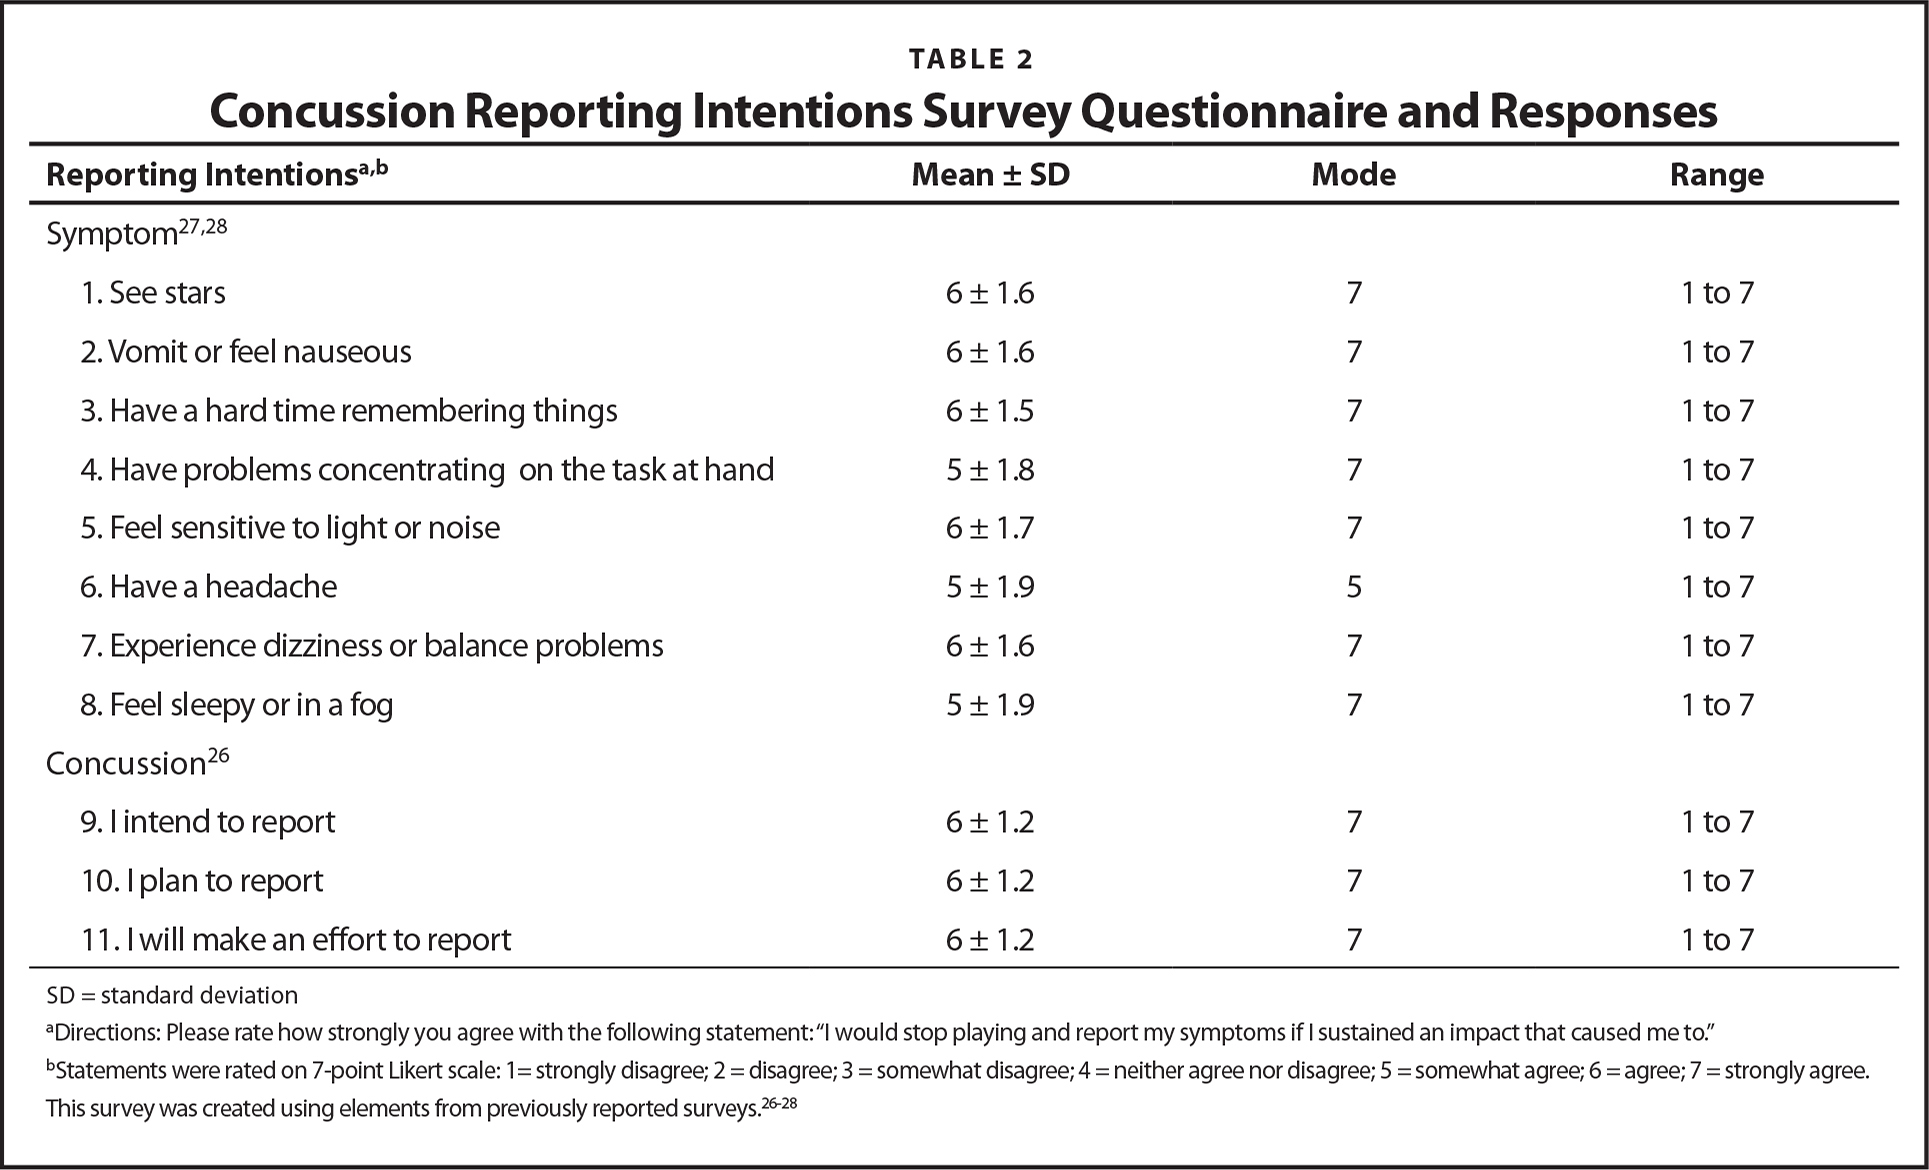 Concussion Reporting Intentions Survey Questionnaire and Responses